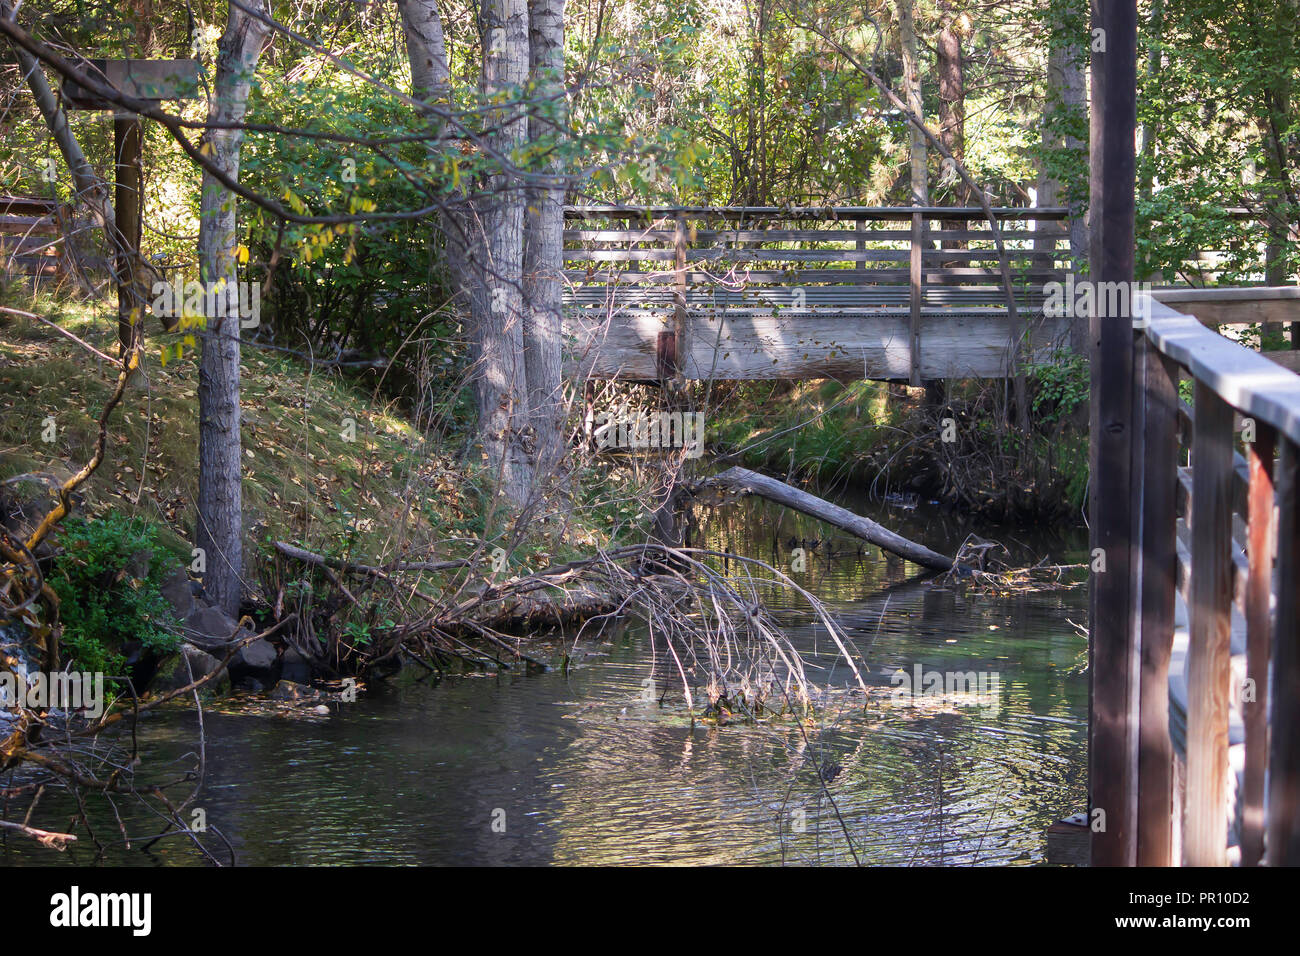 A bridge overpasses serene waters in a wooded setting. - Stock Image